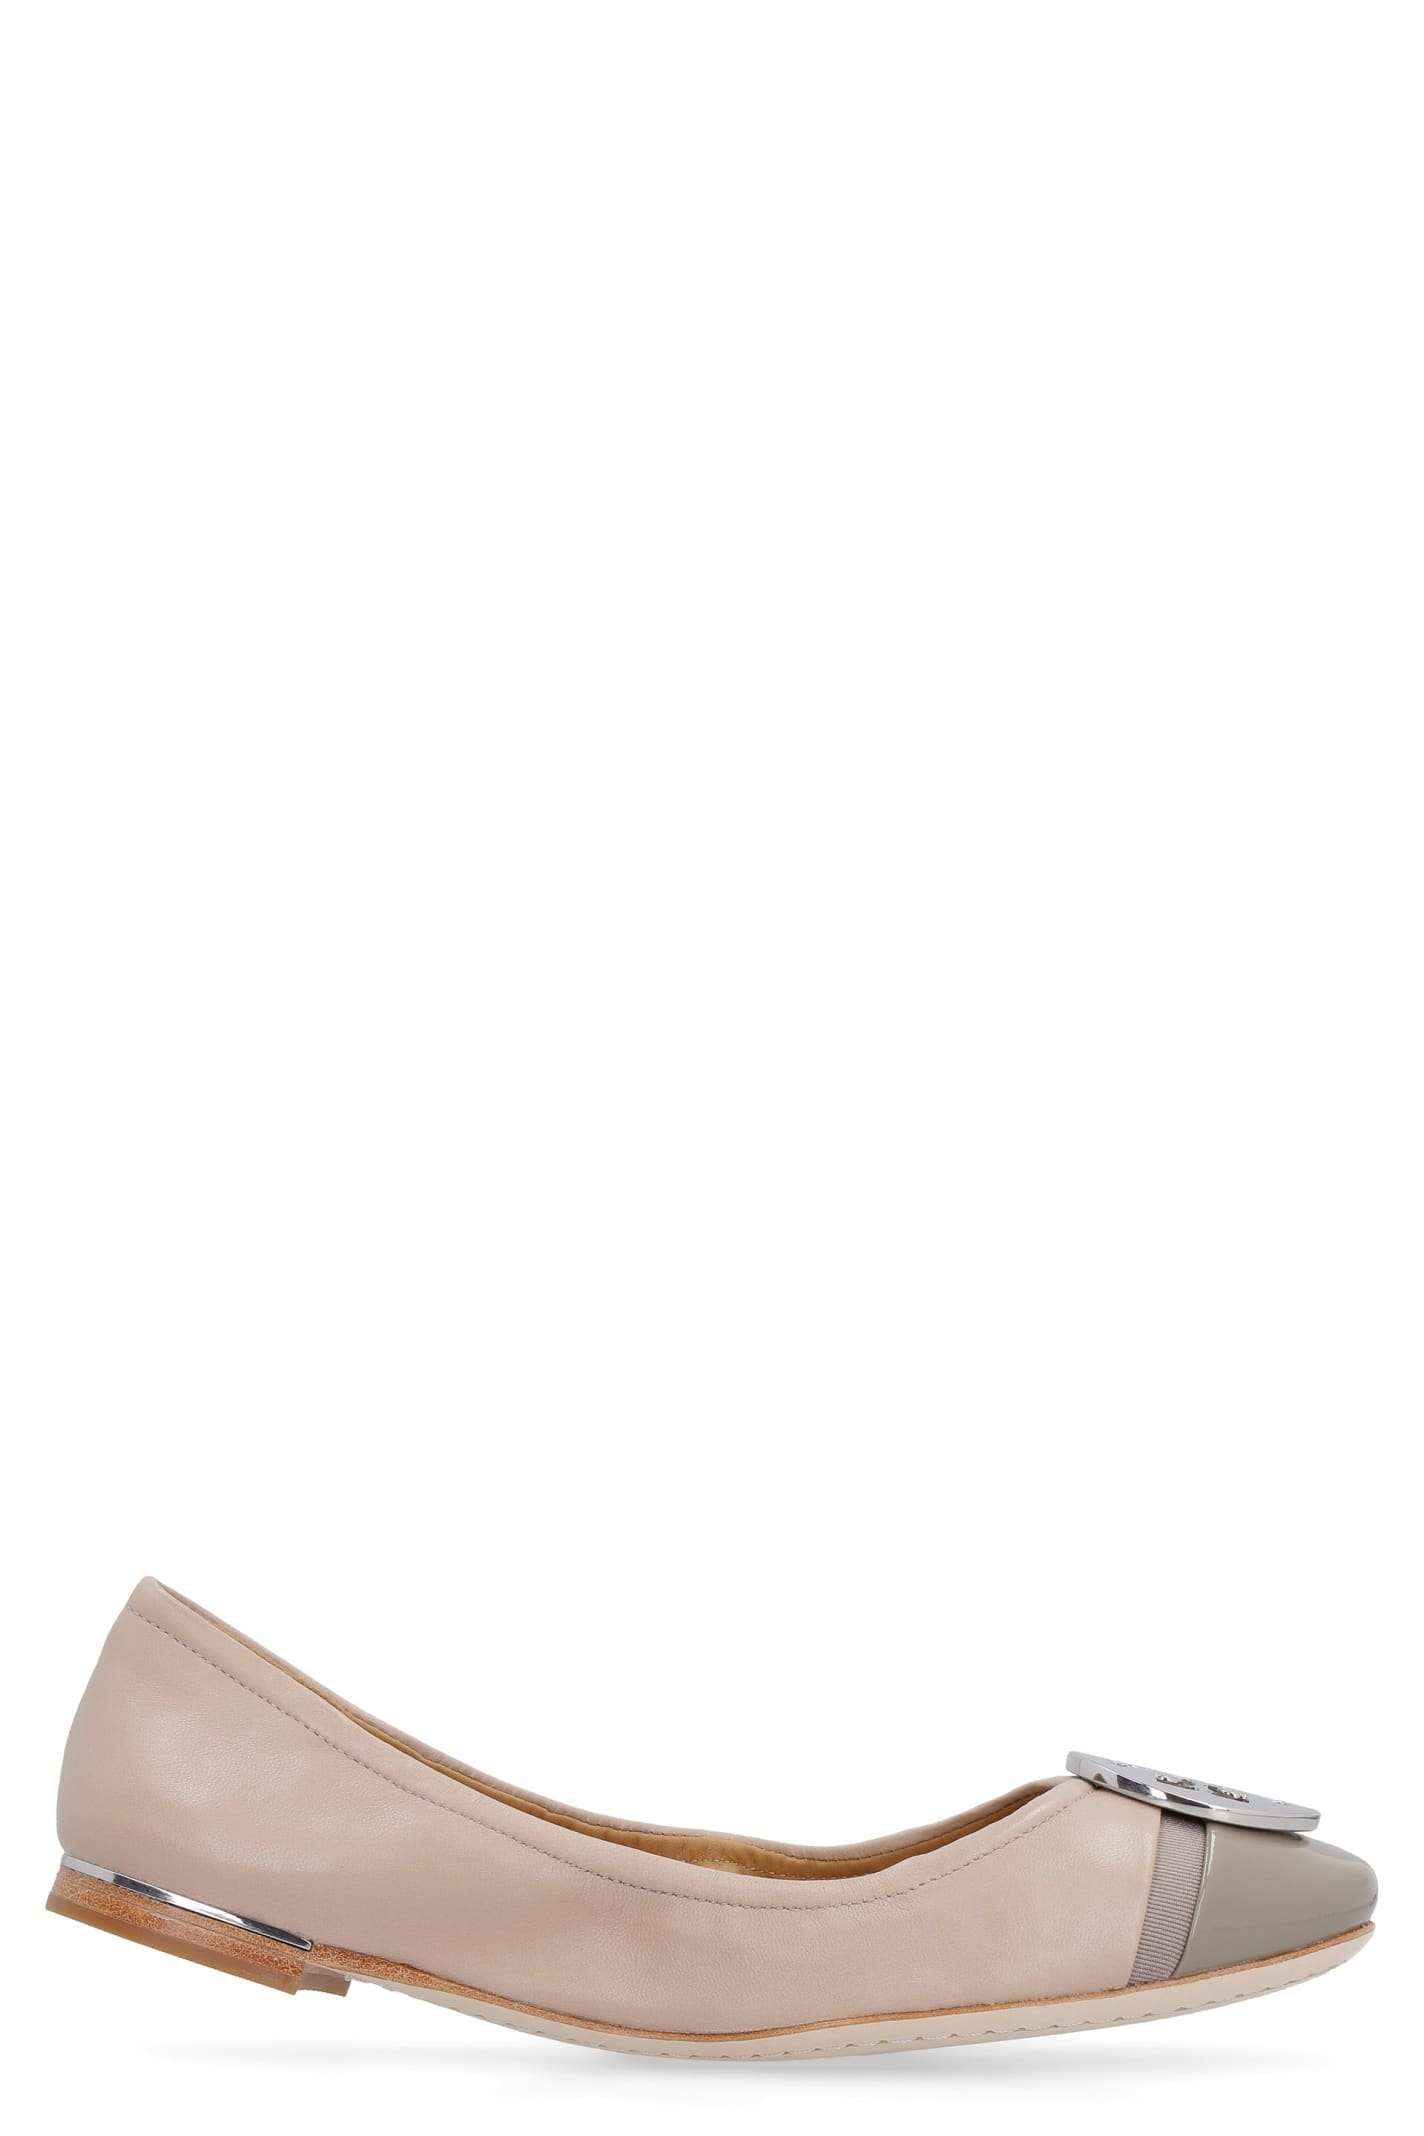 Tory Burch Minnie Leather Ballet Flats With Logo